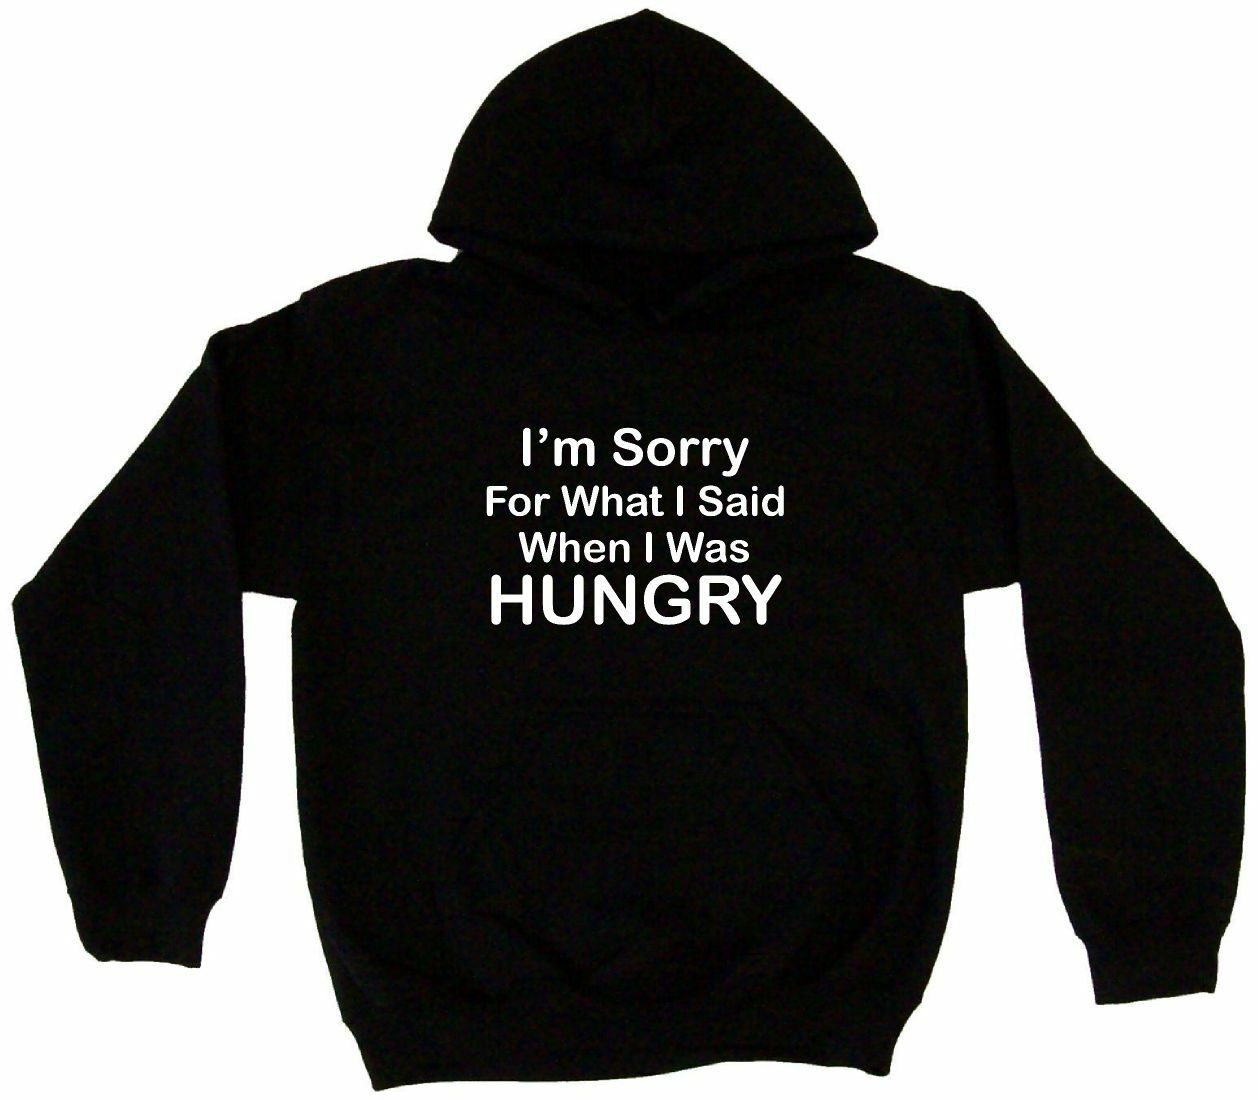 I'm Sorry For What I Said When I Was Hungry Hoodie Sweatshirt